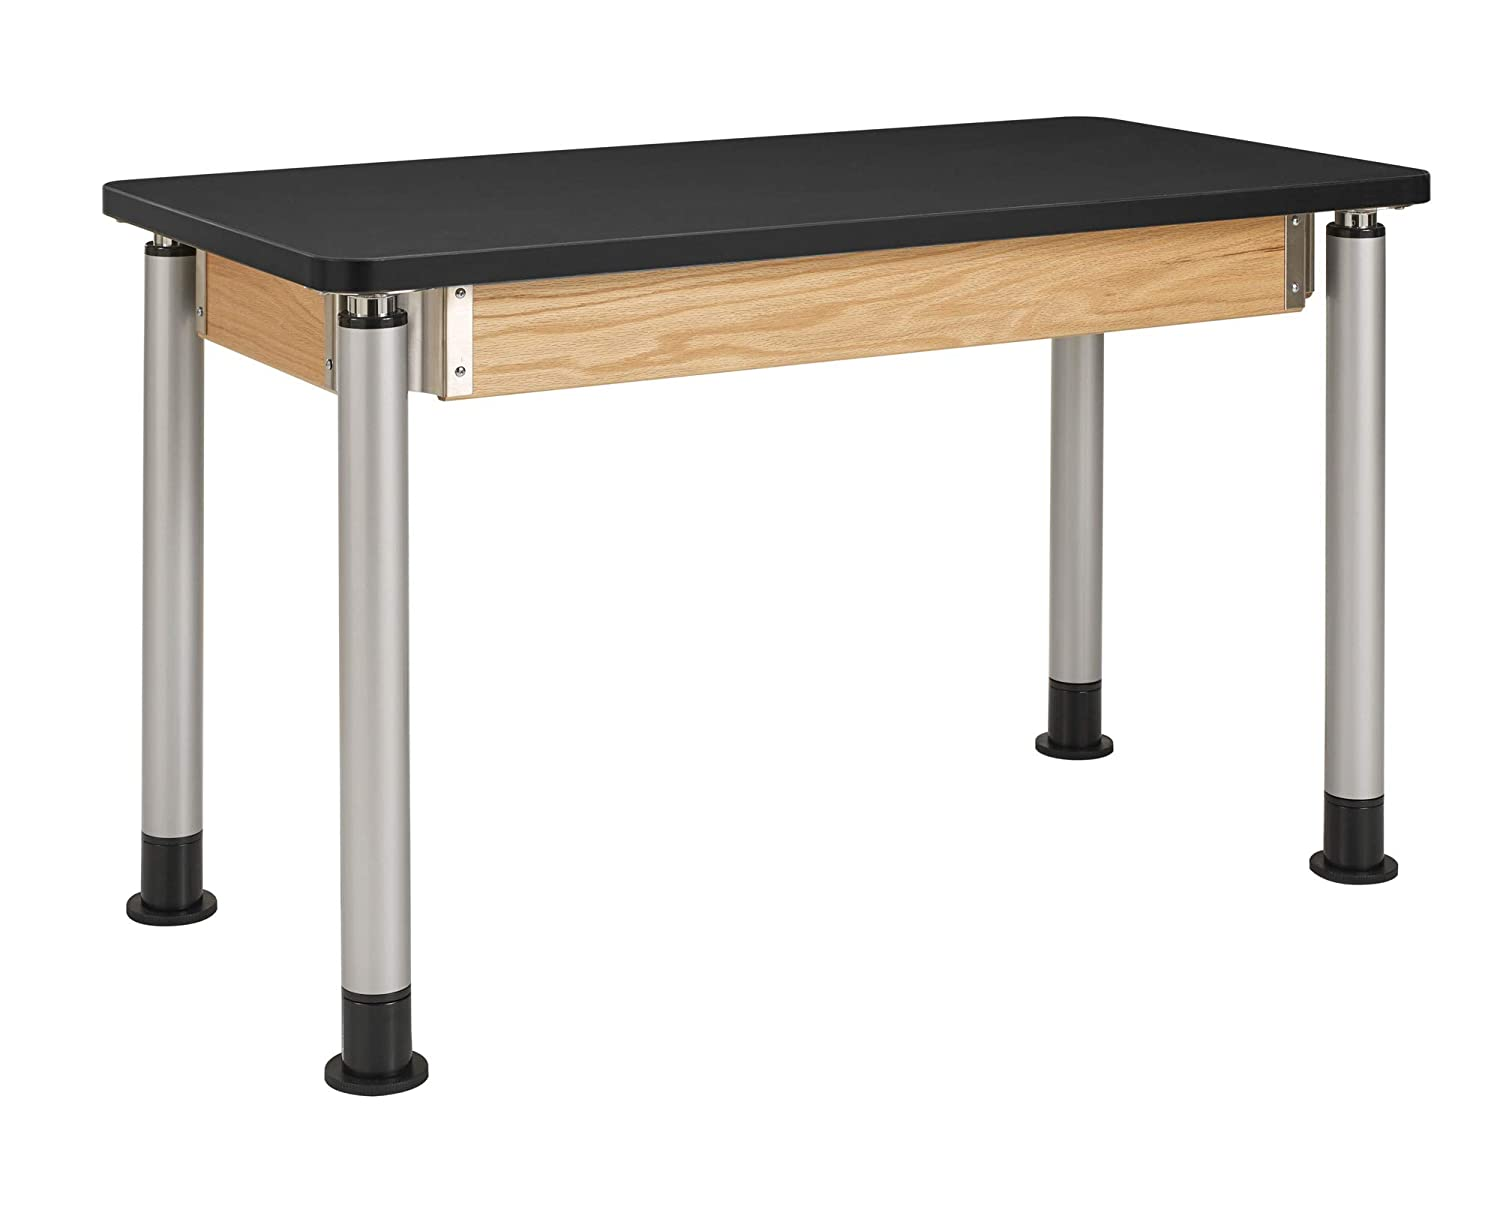 60 Width x 39 Height x 24 Depth Diversified Woodcraft P8602K UV Finish Plain Adjustable Height Table with Chemguard Top